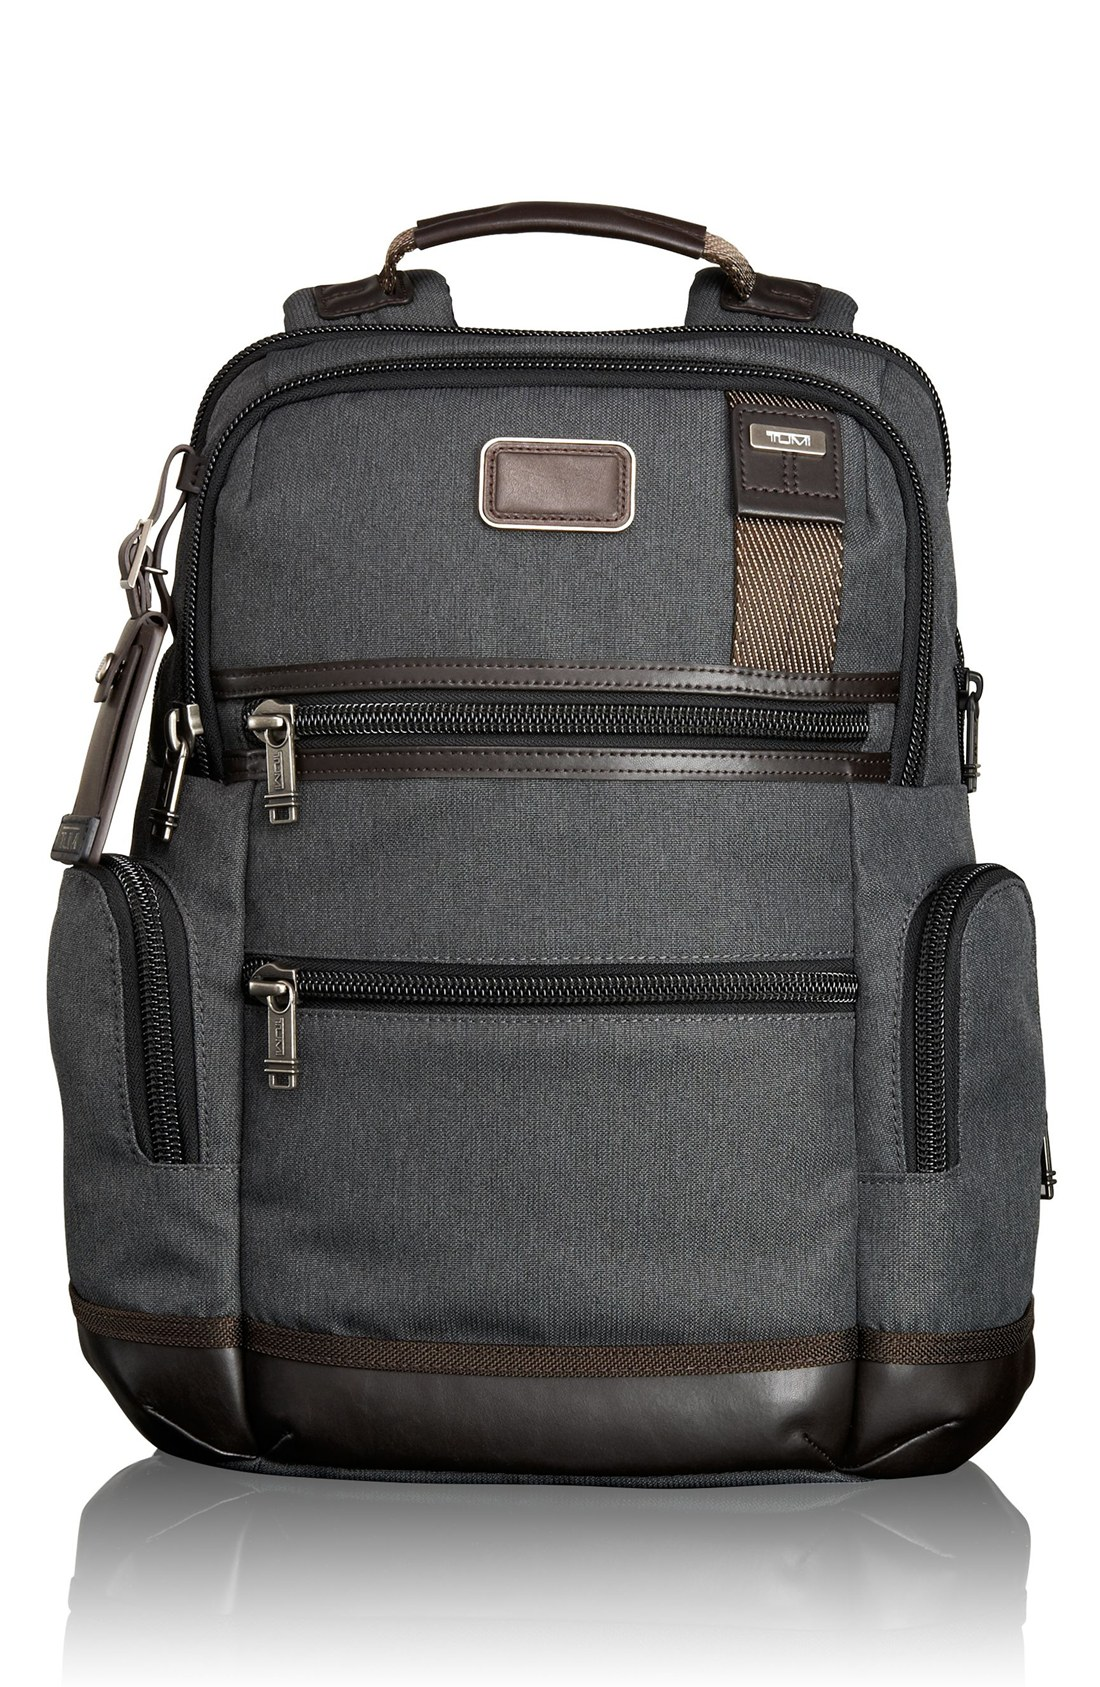 Elegant Tumi Alpha Bravo for Cool Travel Bag Ideas: Tumi Knox Backpack Review | Tumi Alpha Bravo | Tumi Alpha Bravo Lejeune Backpack